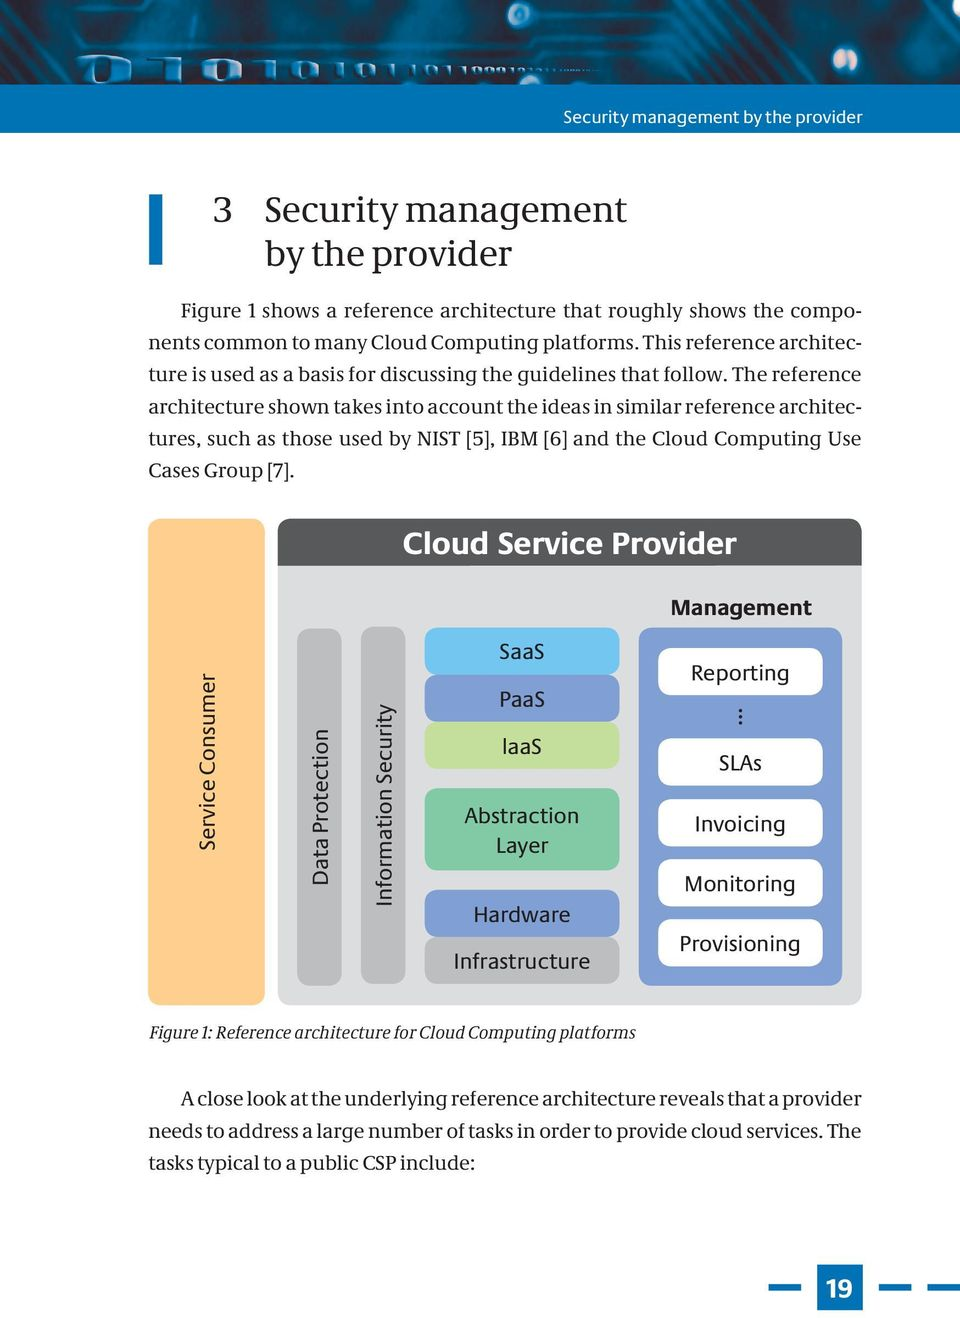 The reference architecture shown takes into account the ideas in similar reference architectures, such as those used by NIST [5], IBM [6] and the Cloud Computing Use Cases Group [7].